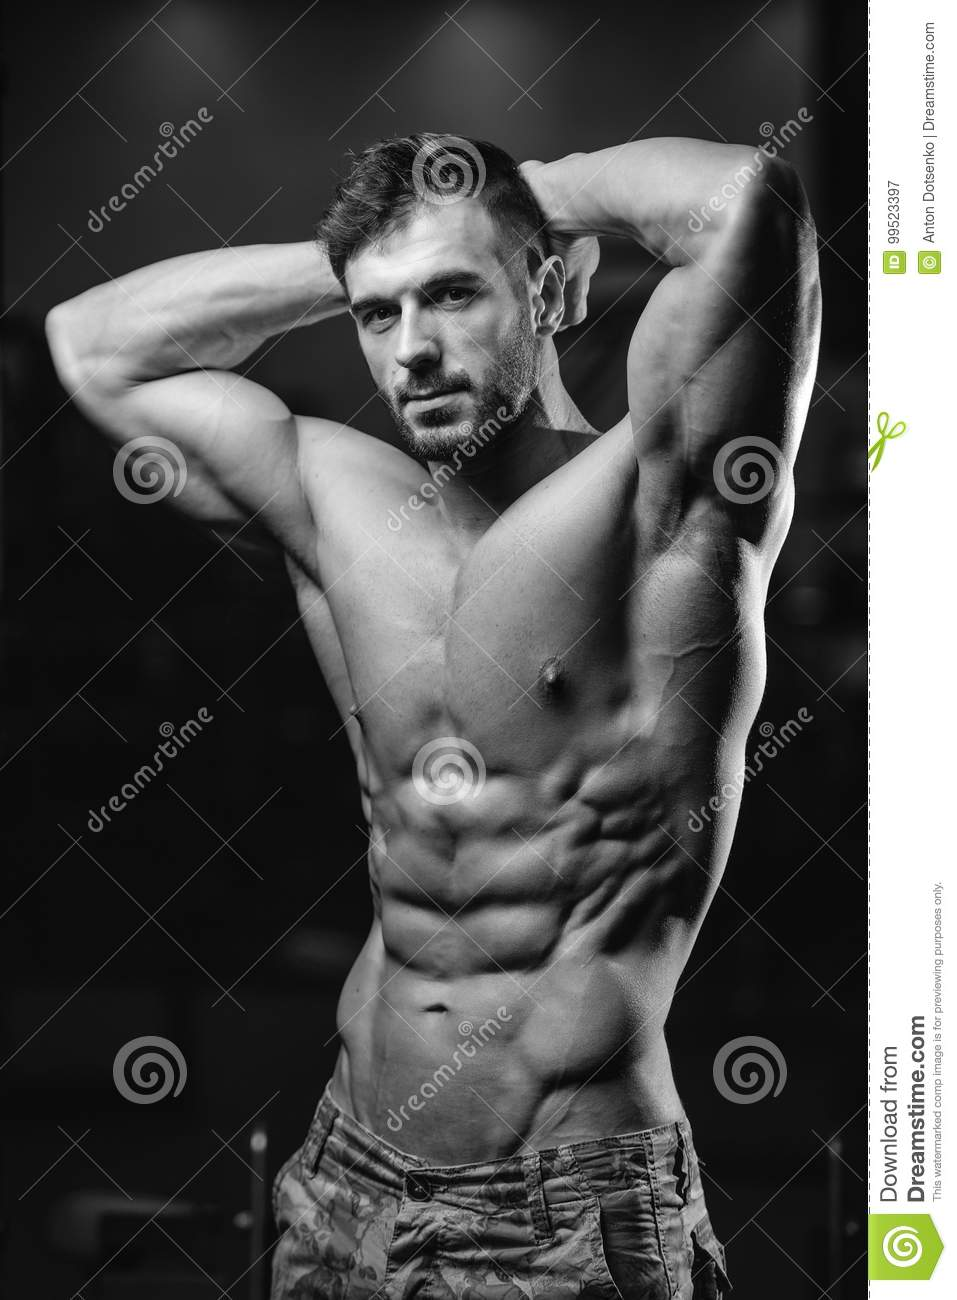 Caucasian fitness model in gym close up abs